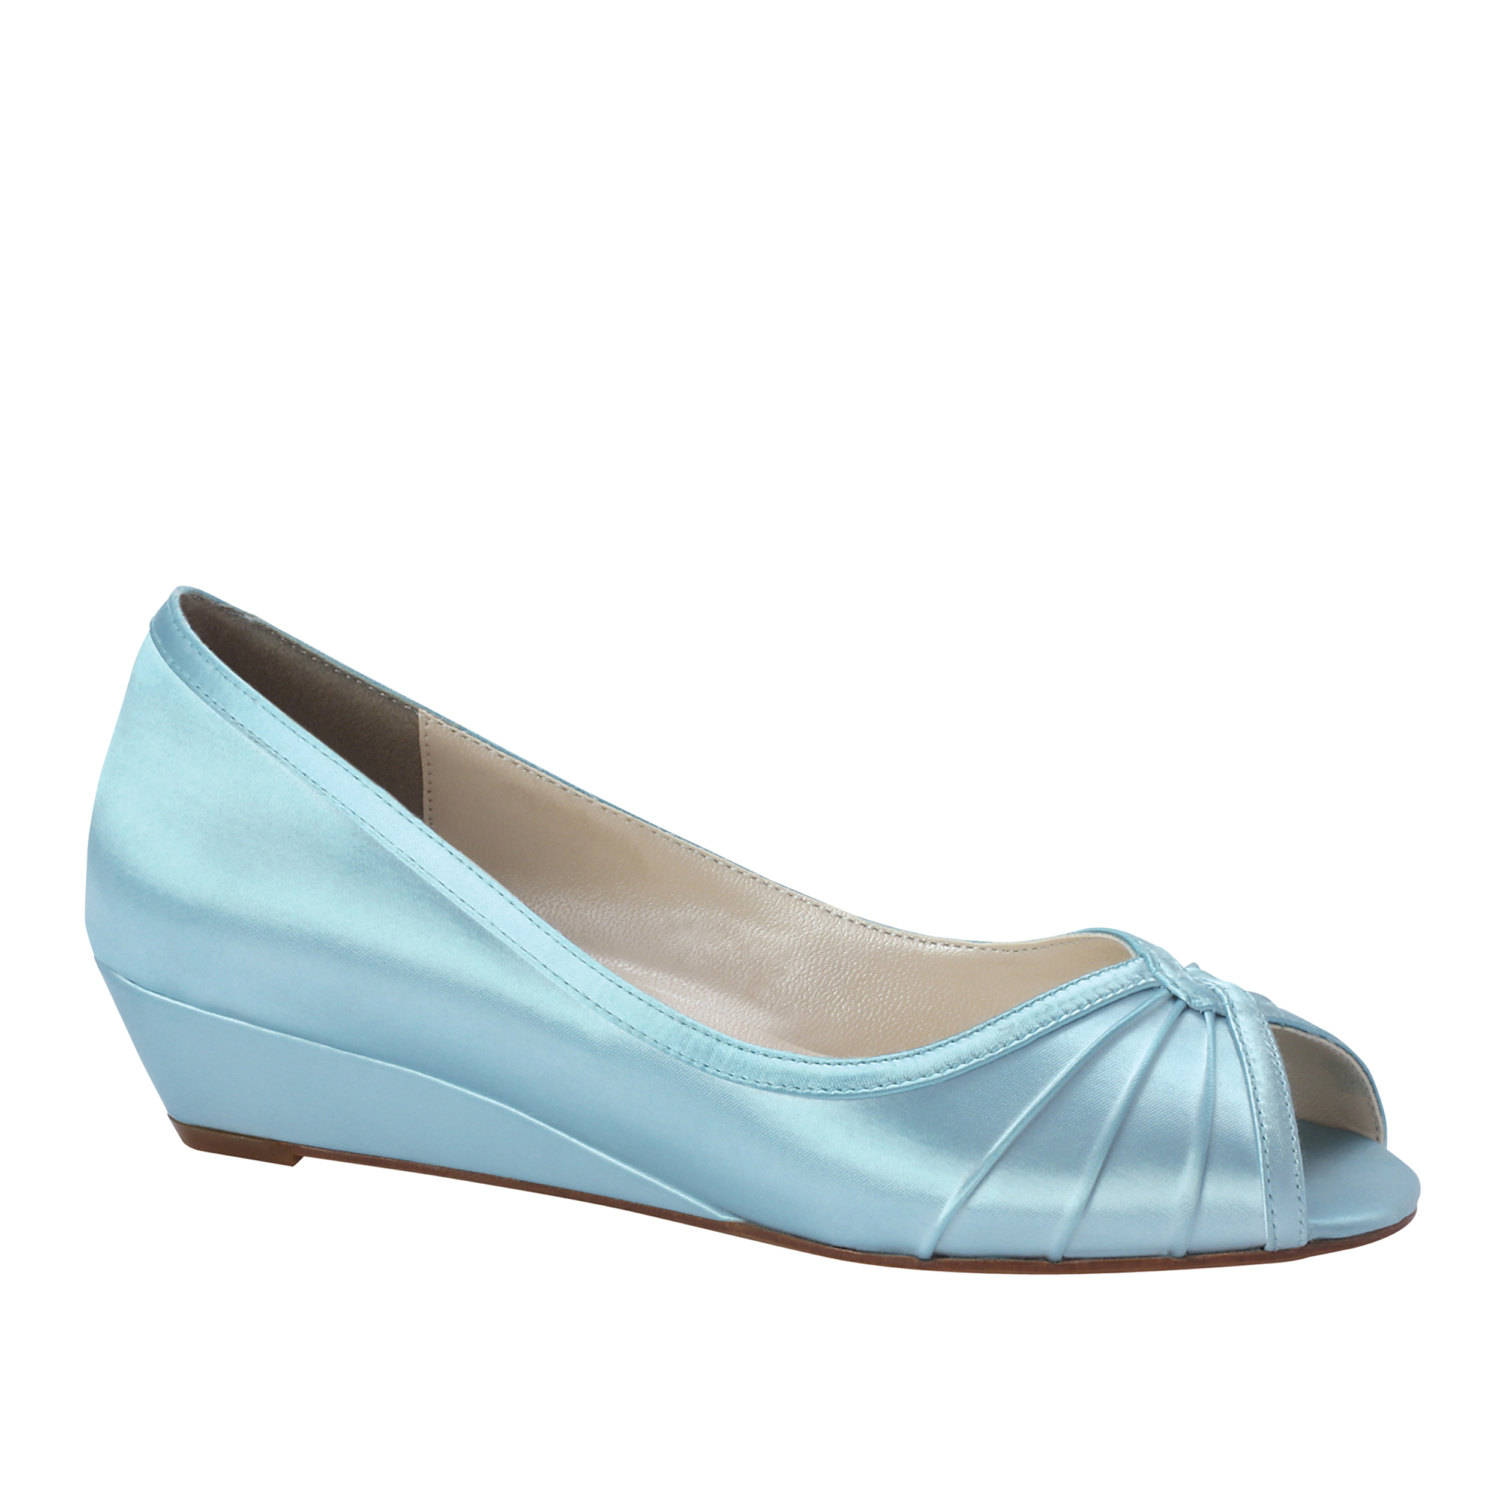 1 inch wedding shoes photo - 1